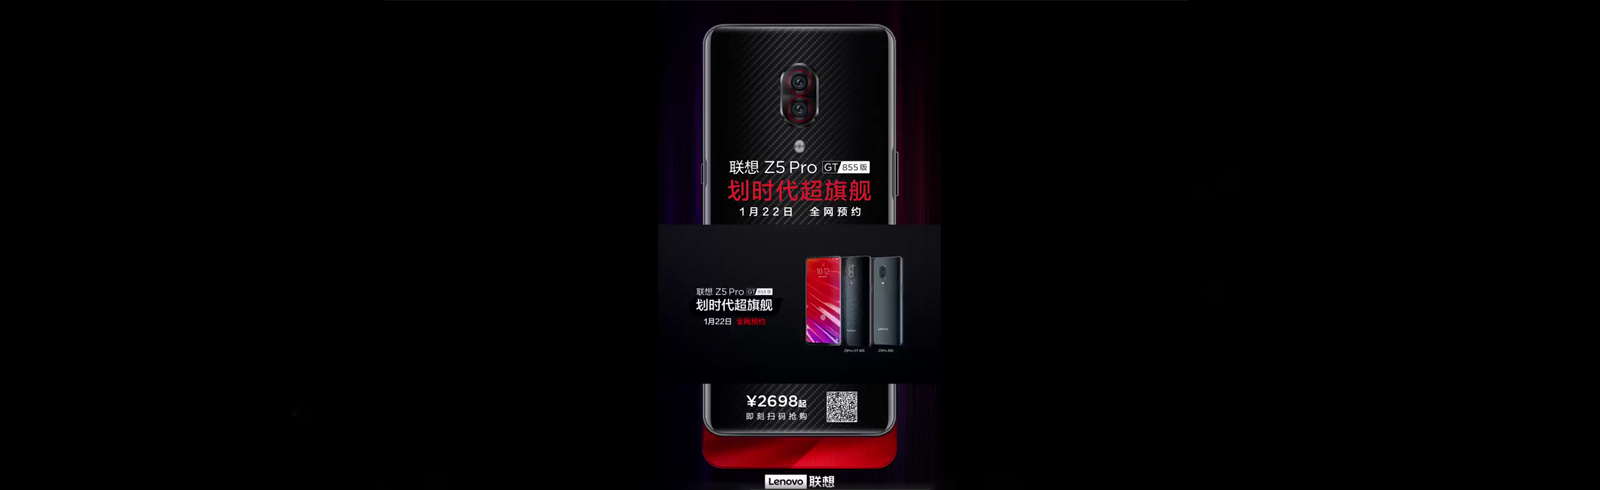 Lenovo Z5 Pro GT - the world's first Snapdragon 855 smartphone, goes on pre-sale today